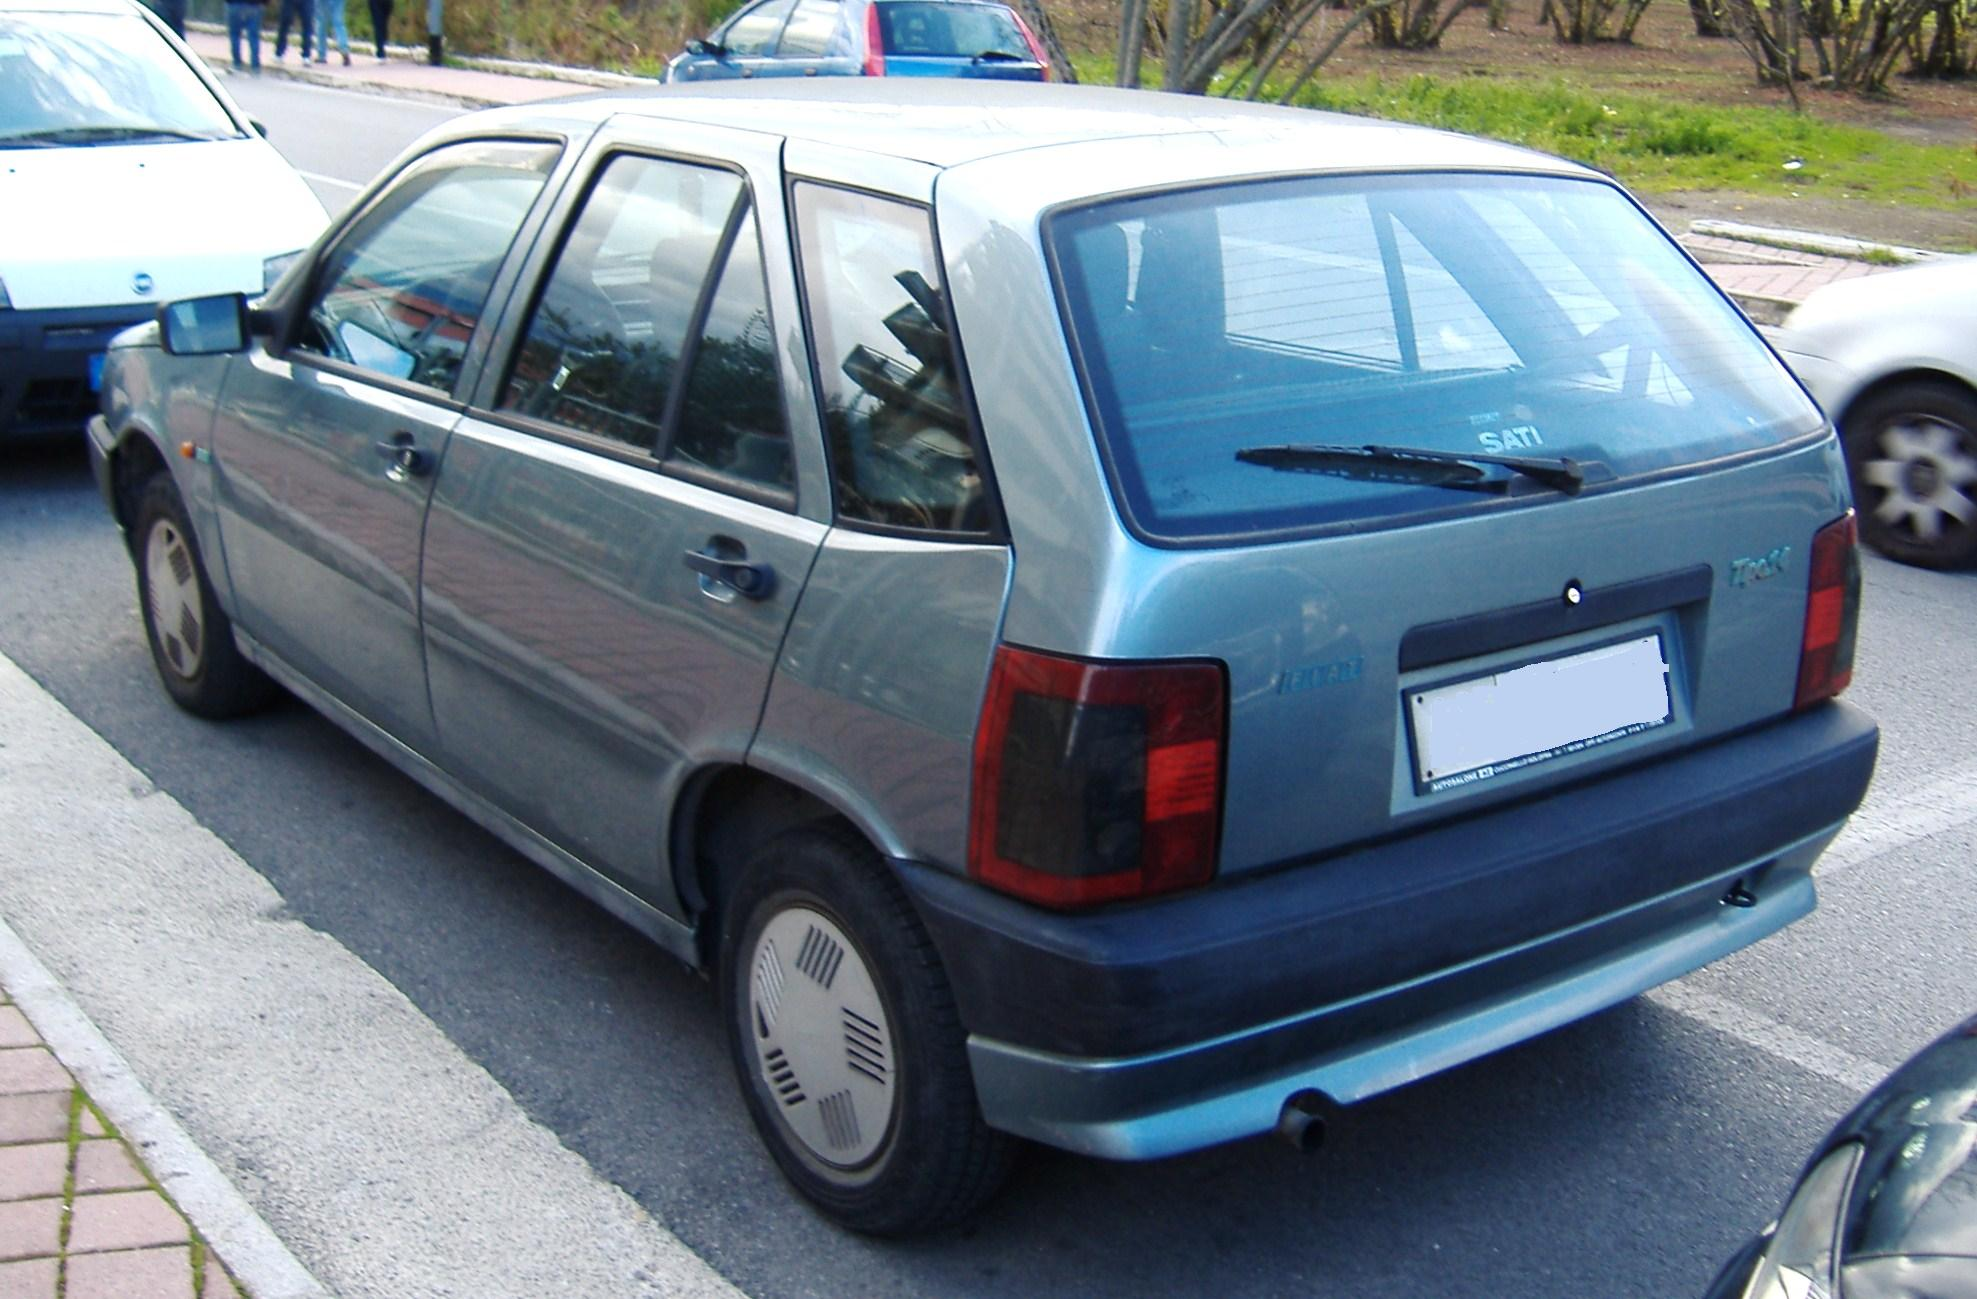 File Fiat Tipo 1 4L rear on fiat palio 2000